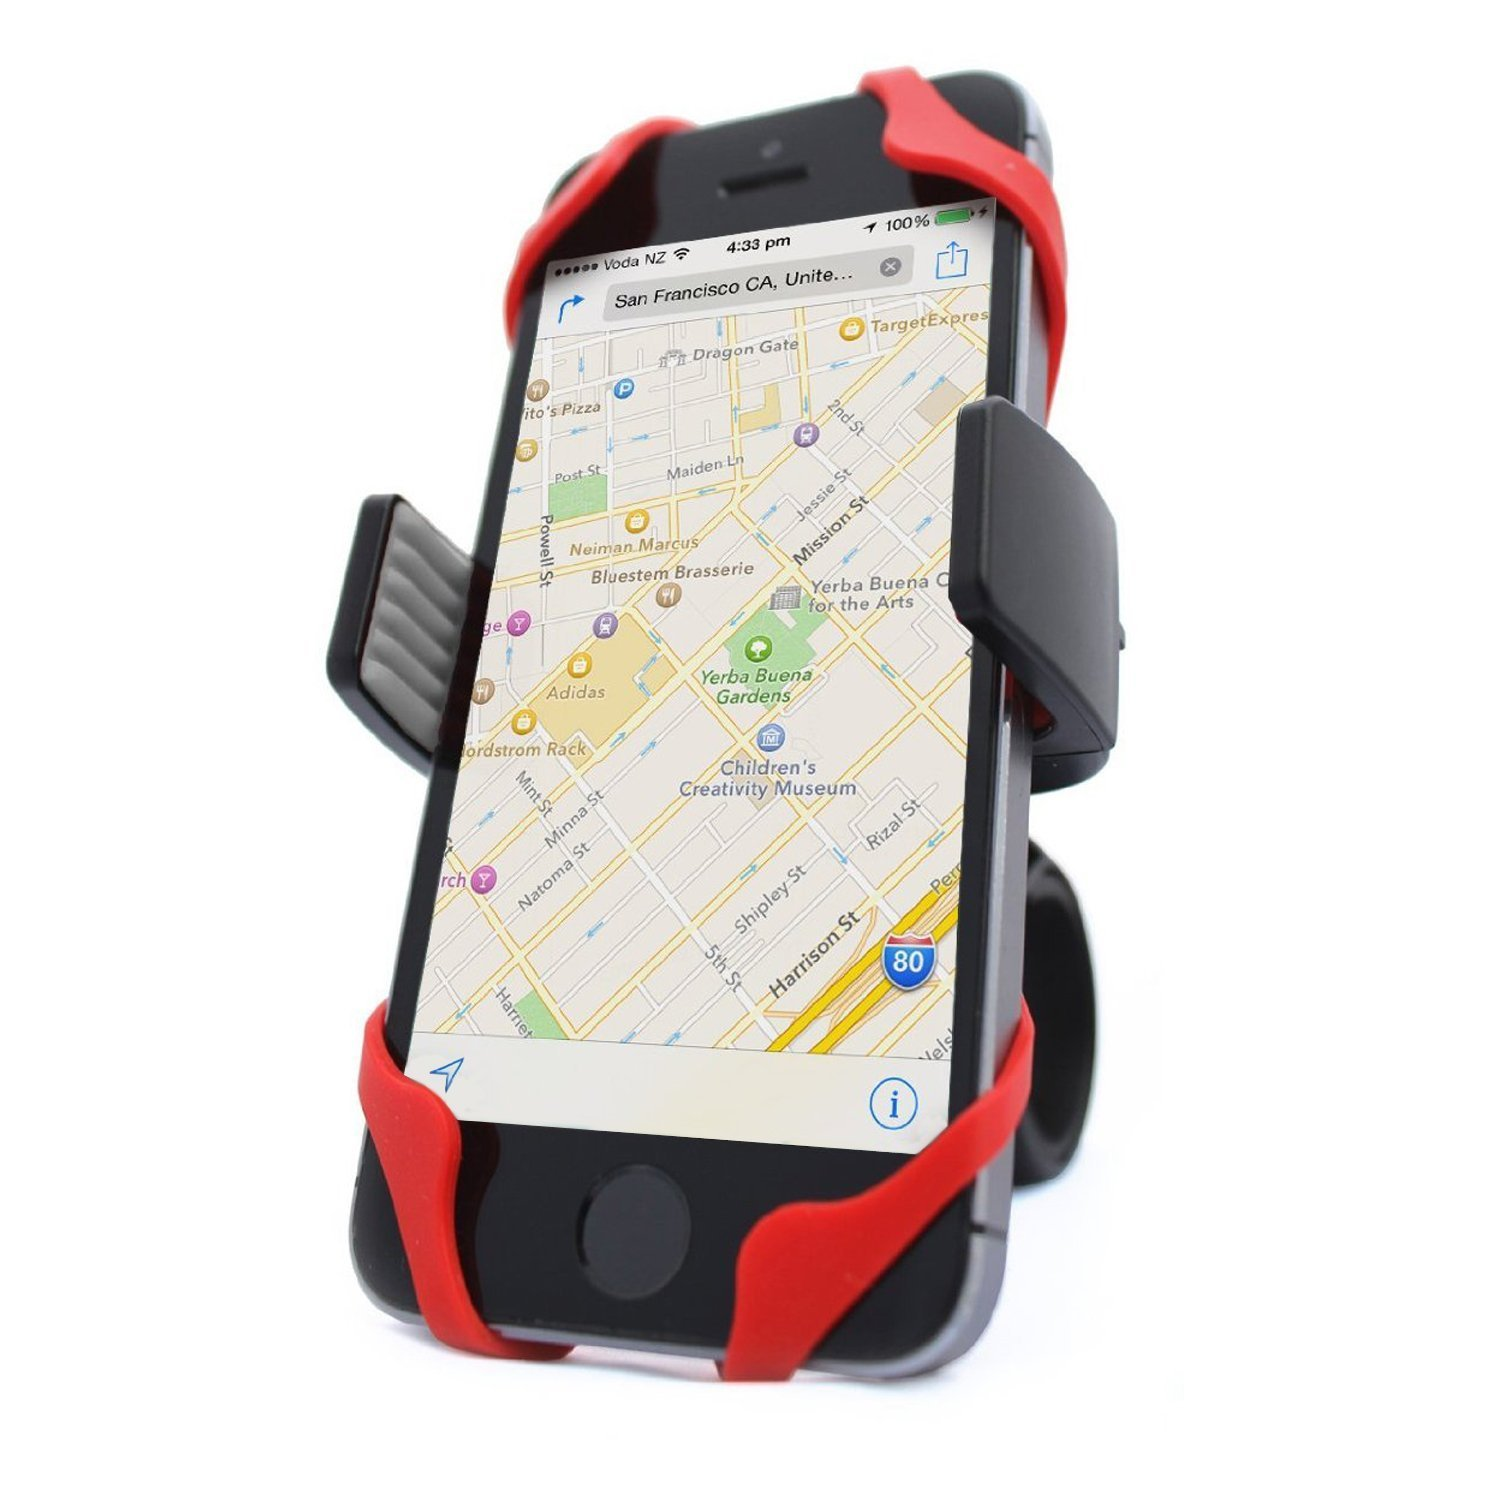 Vibrelli Universal Bike Phone Mount - Fits iPhone X, 8, 8 Plus, 7, 7 Plus, 6, 6 Plus and Android Devices VPM-002